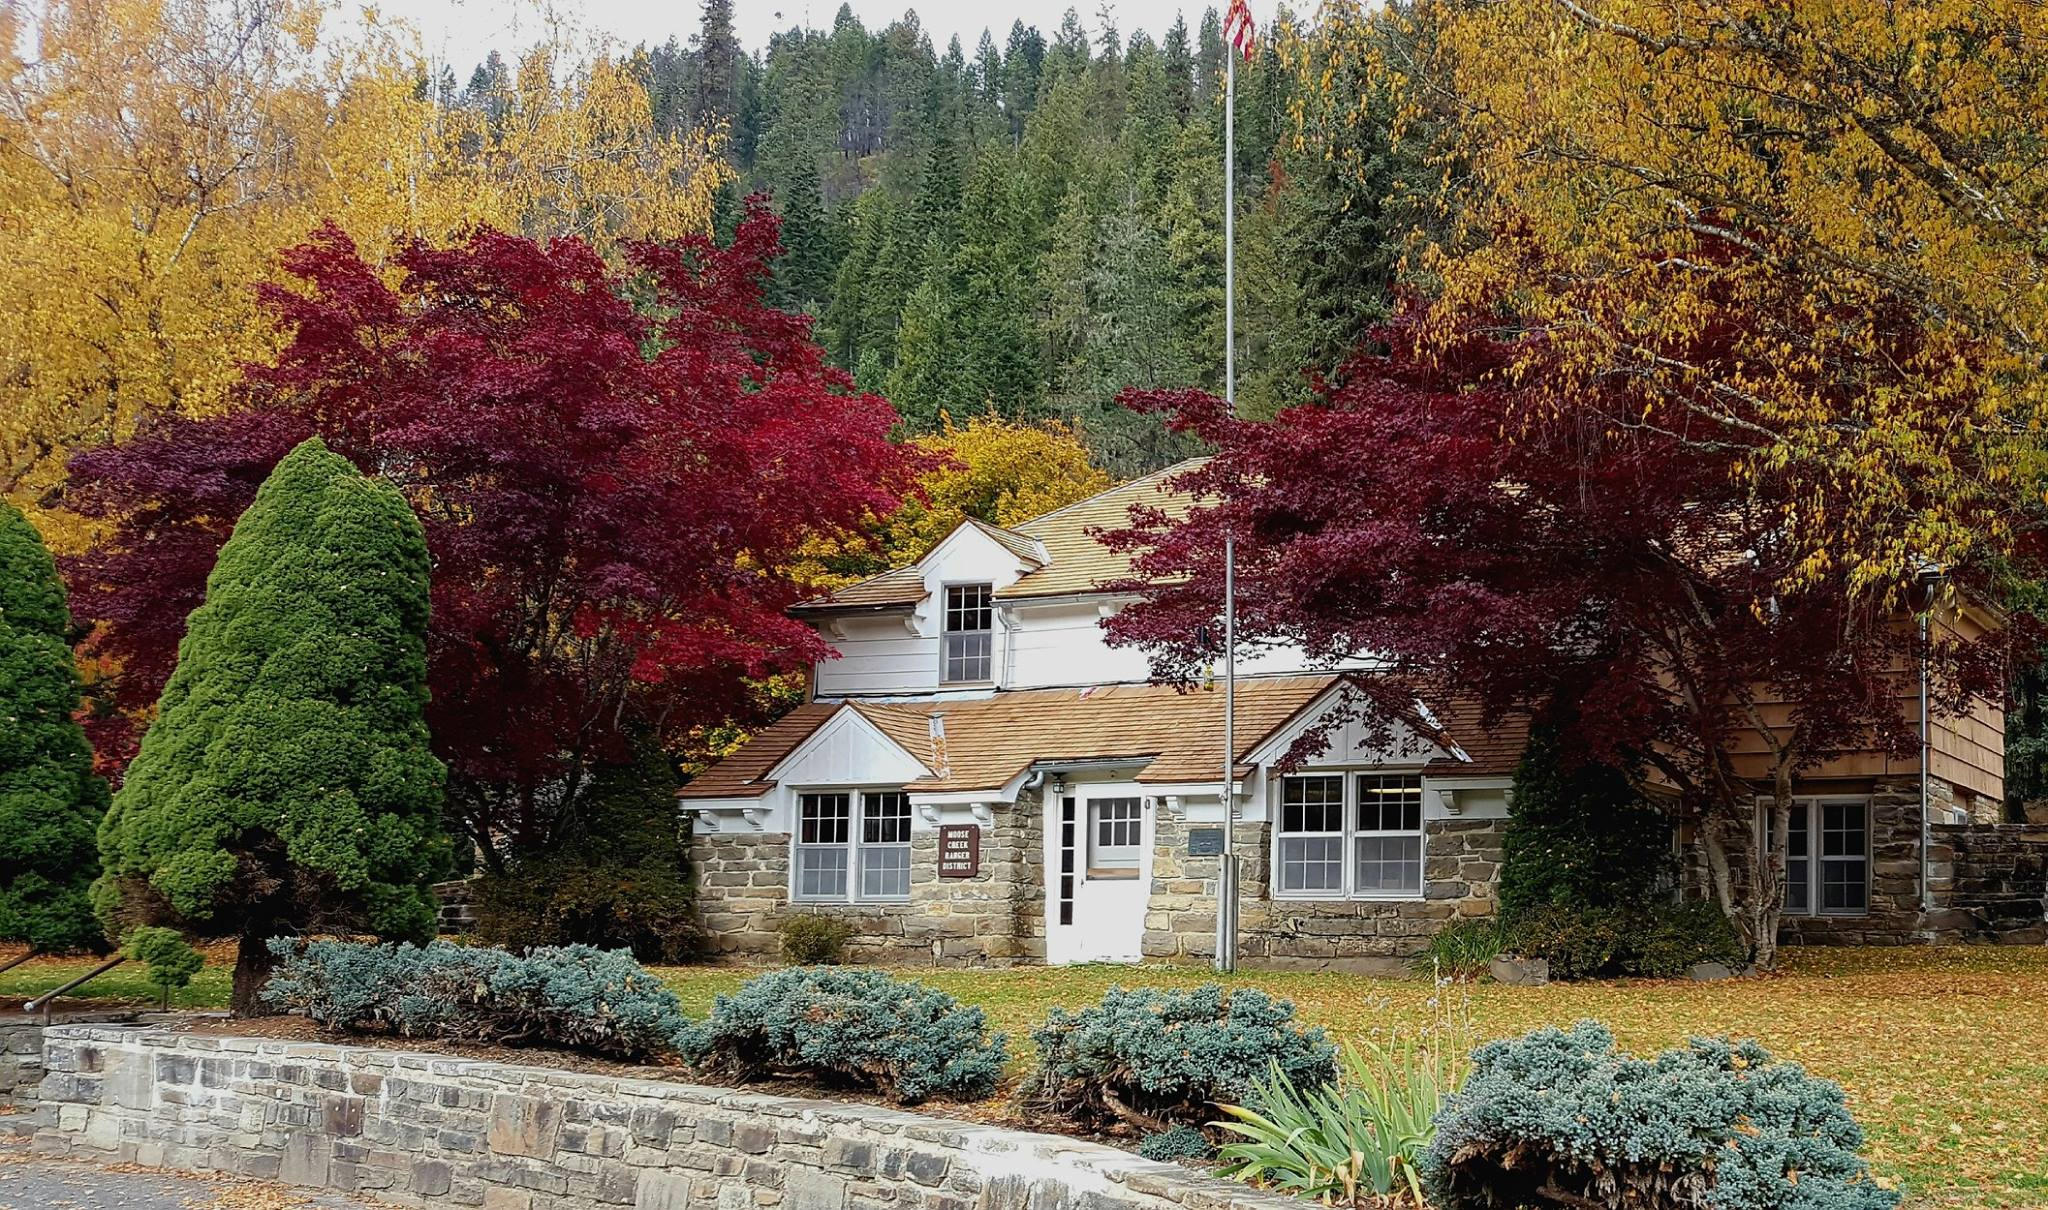 Fenn Ranger Station with autumn leaves